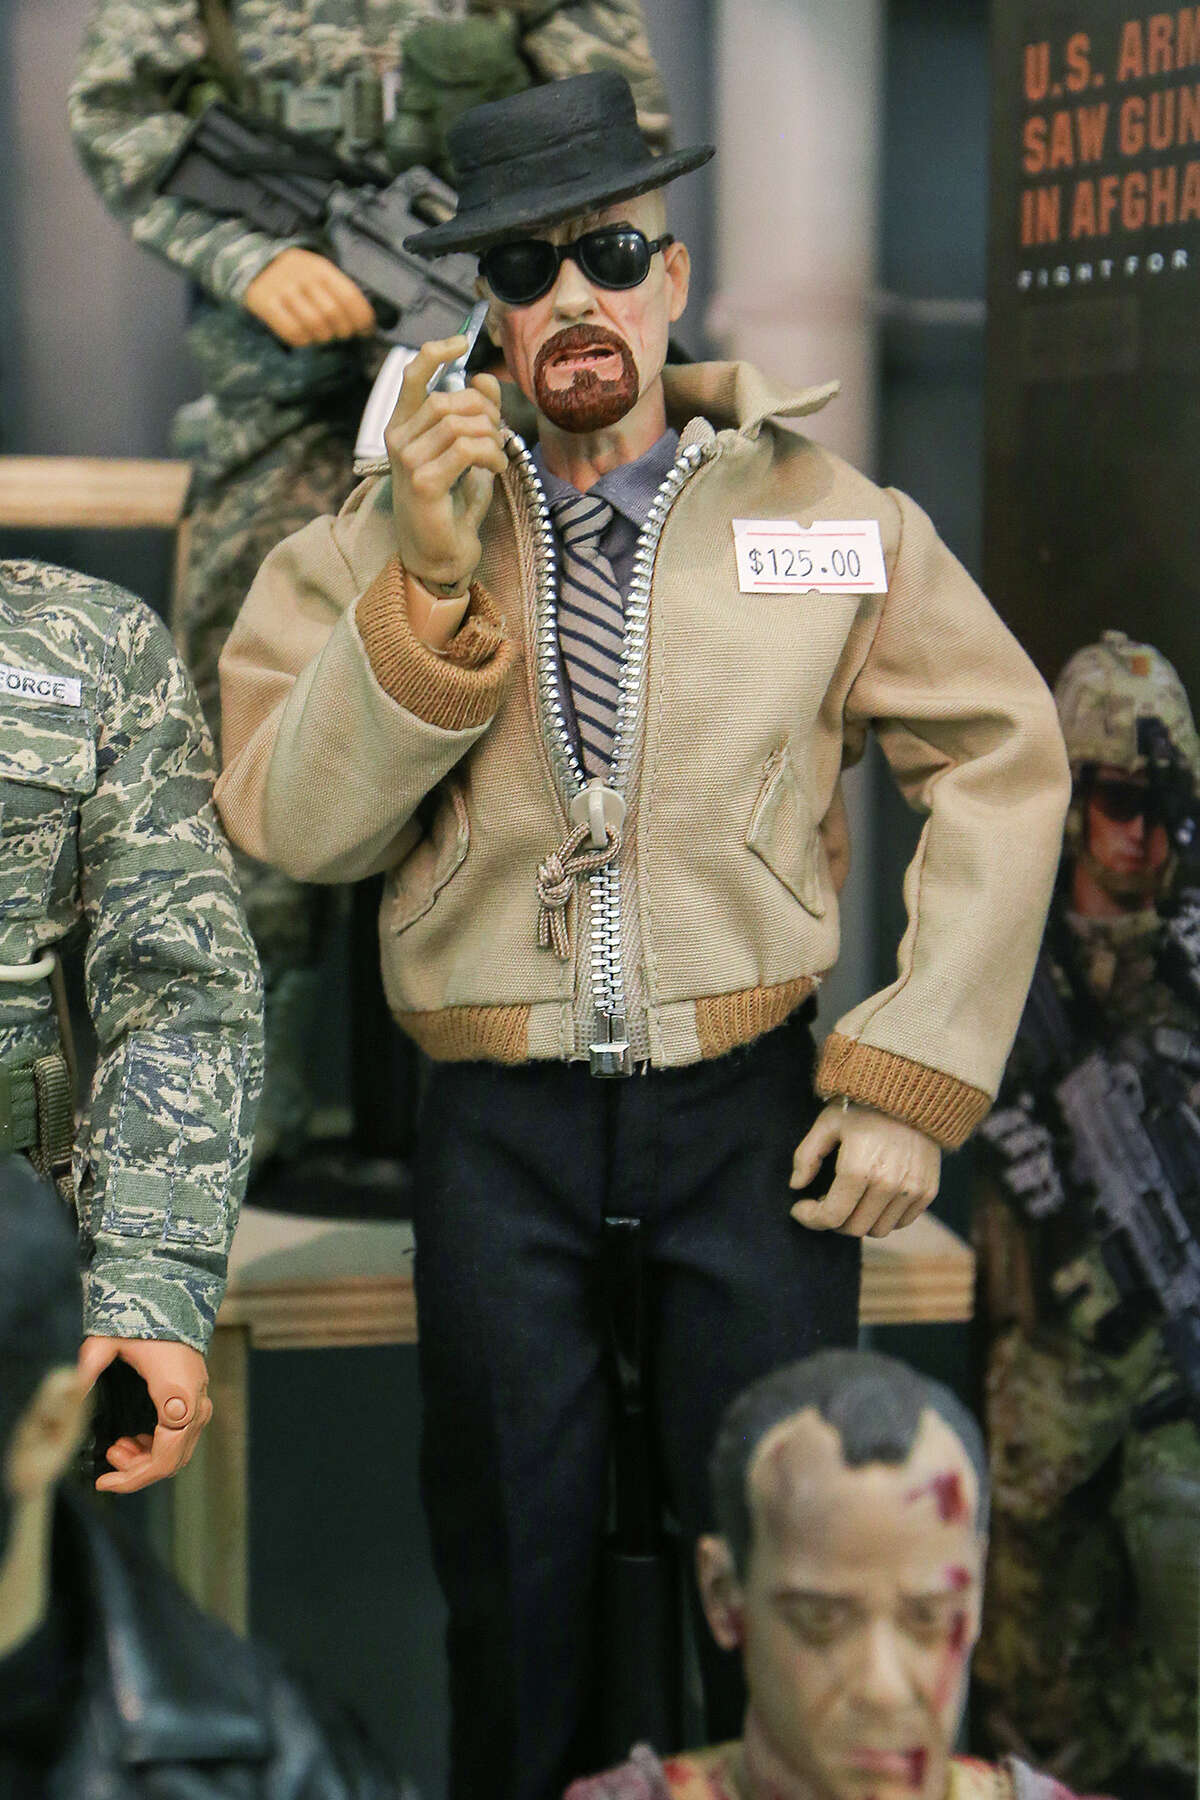 Breaking Bad's Walter White is one of many handmade 1/6 scale action figures for sale by San Antonian Rick Sollers of R.C. Custom Toys at the 2014 Texas Toy Soldier Show at the Menger Hotel on Sunday, May 25, 2014. Photo by Marvin Pfeiffer / EN Communities